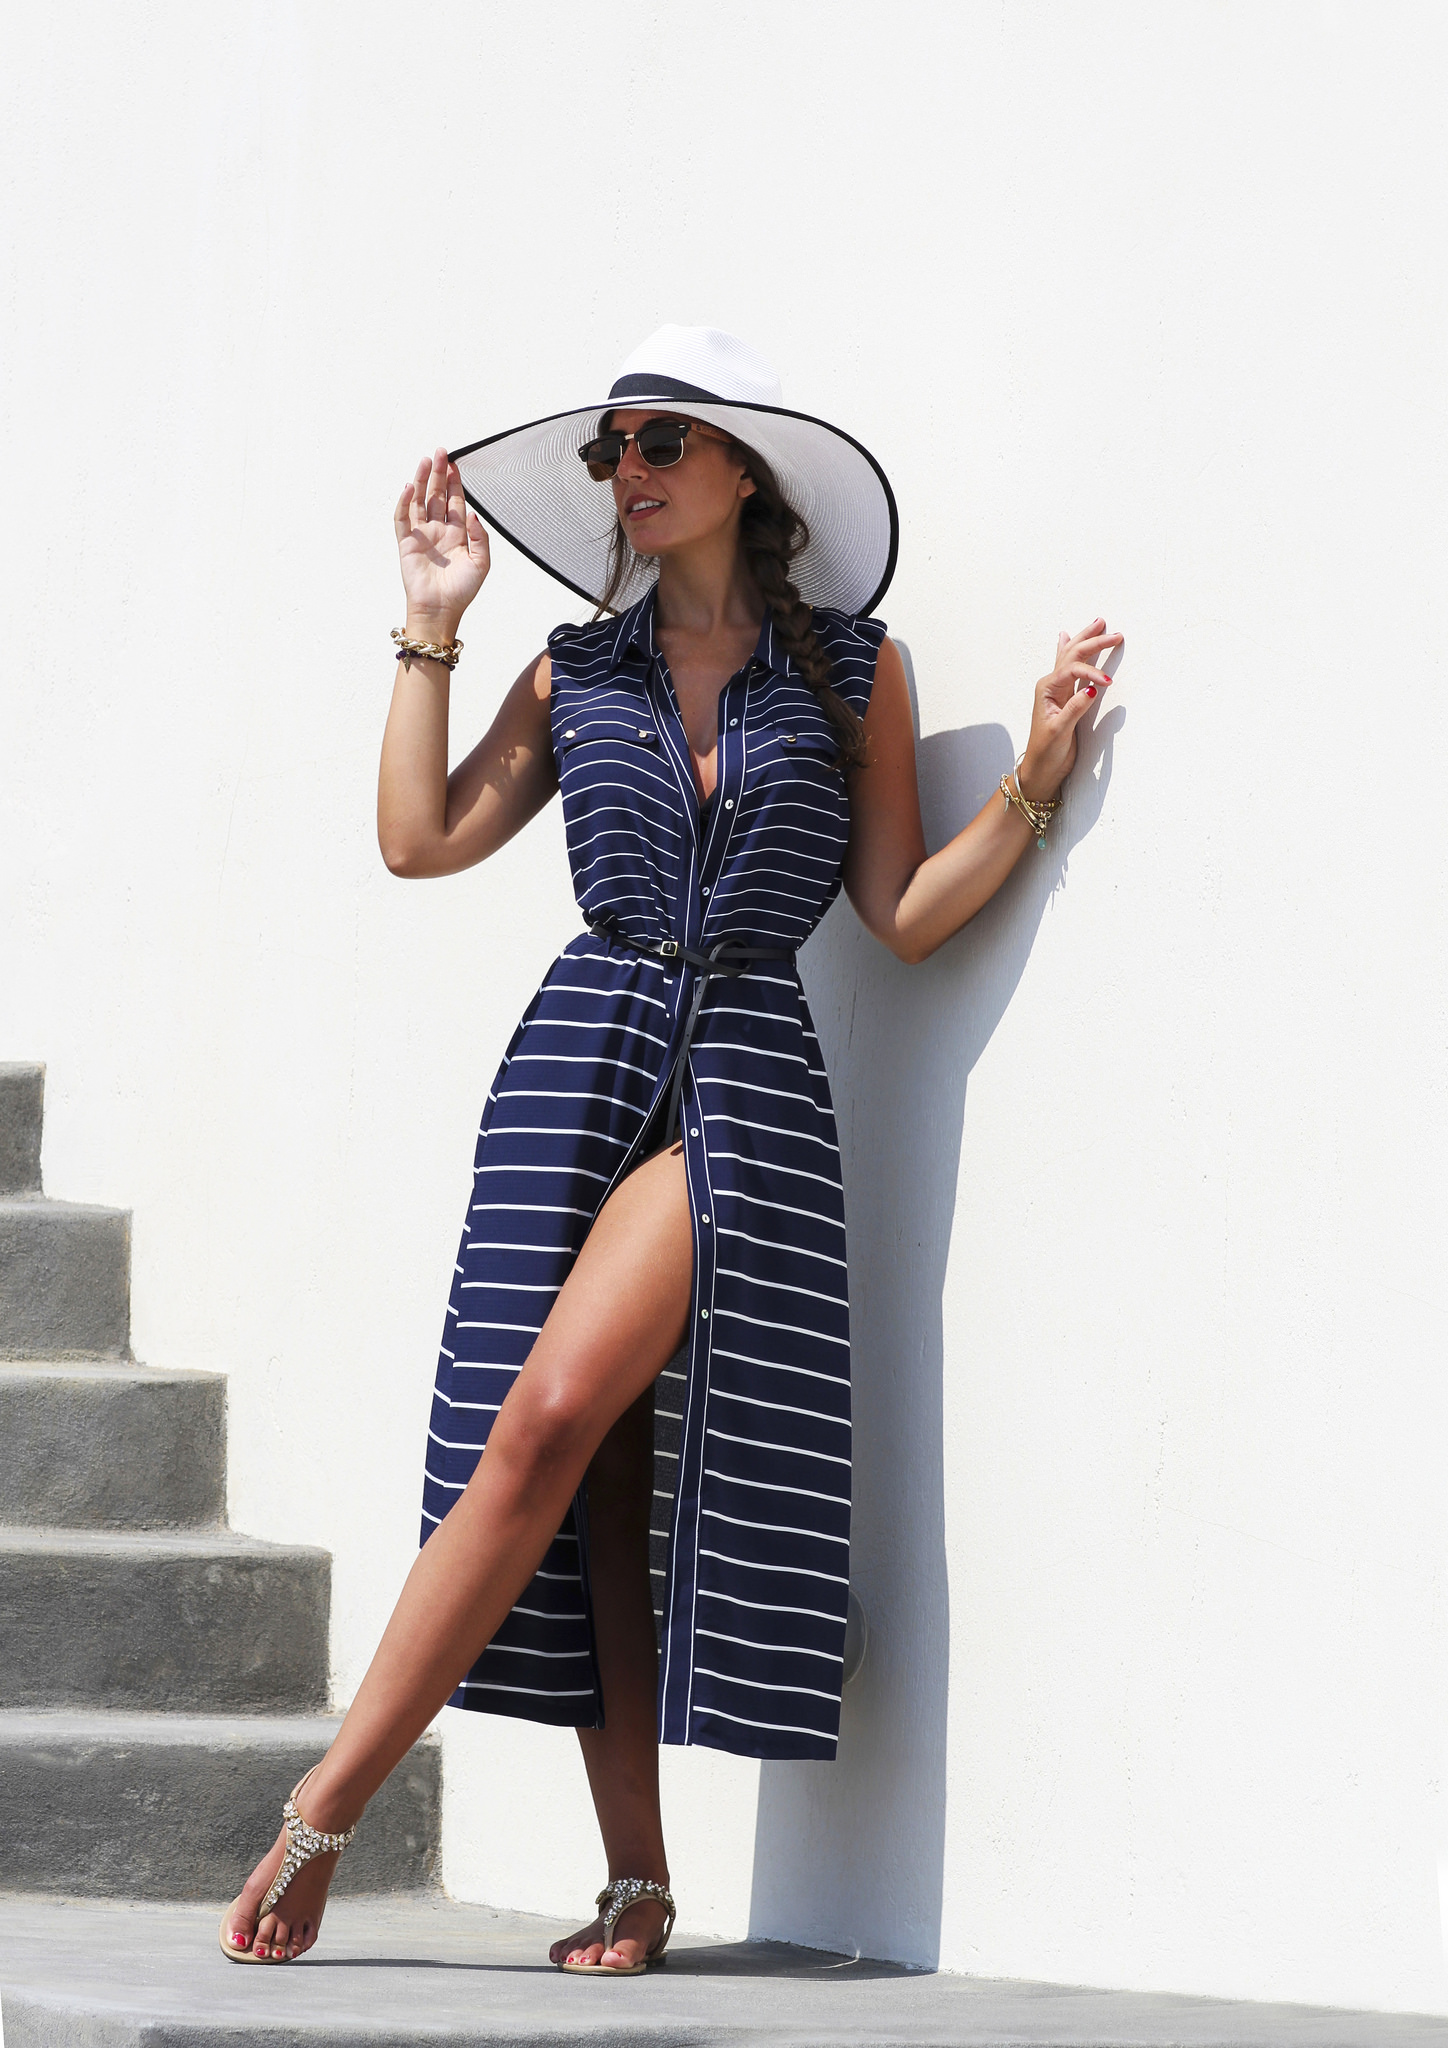 Planning your next vacation and not sure what to pack? Check out these 21 Cute Outfit Ideas for inspiration! from ThisSillyGirlsLife.com